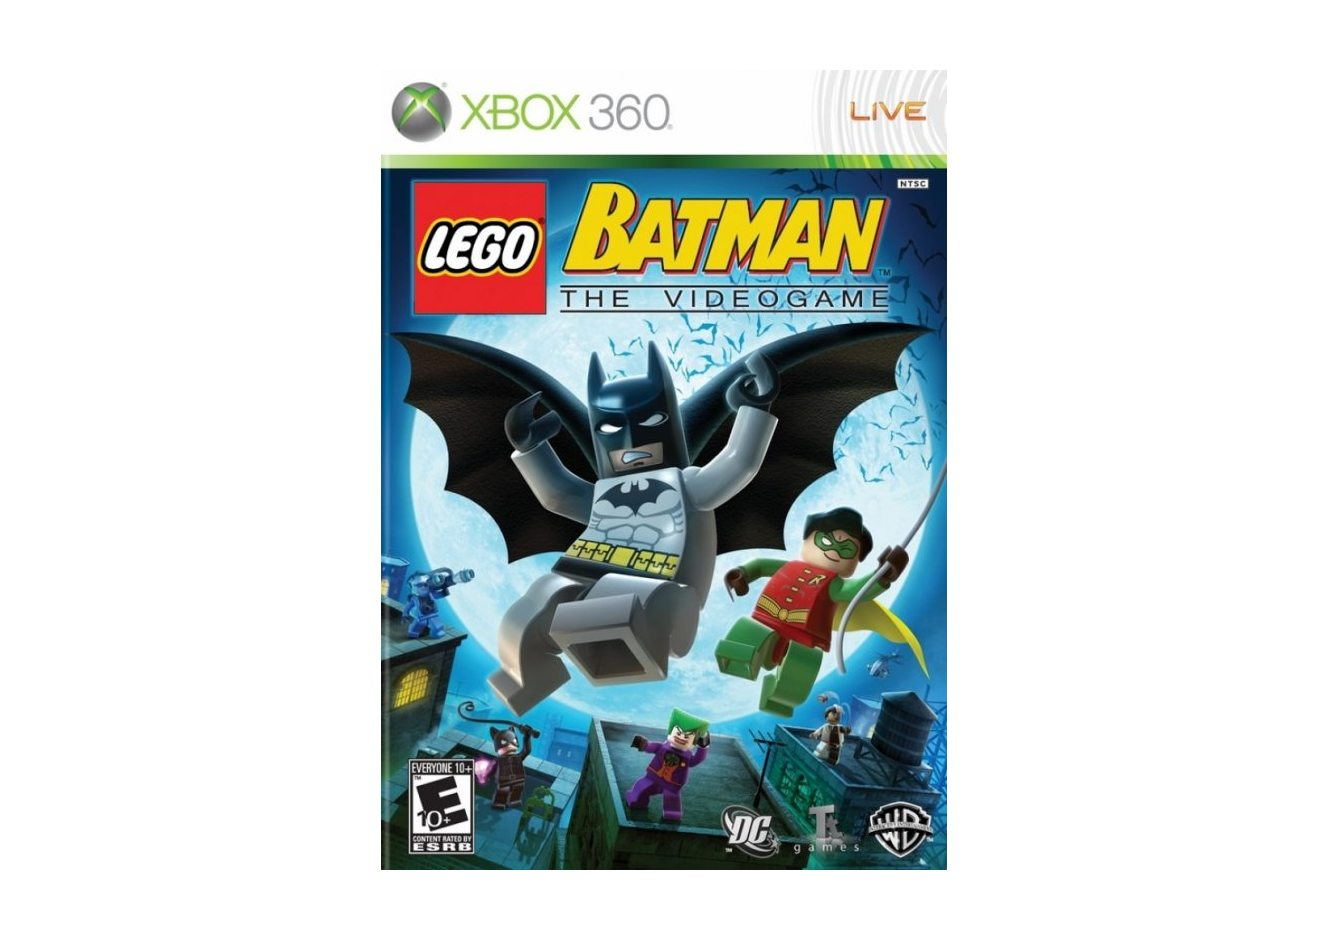 Xbox 360 LEGO Batman: The Videogame Xbox 360